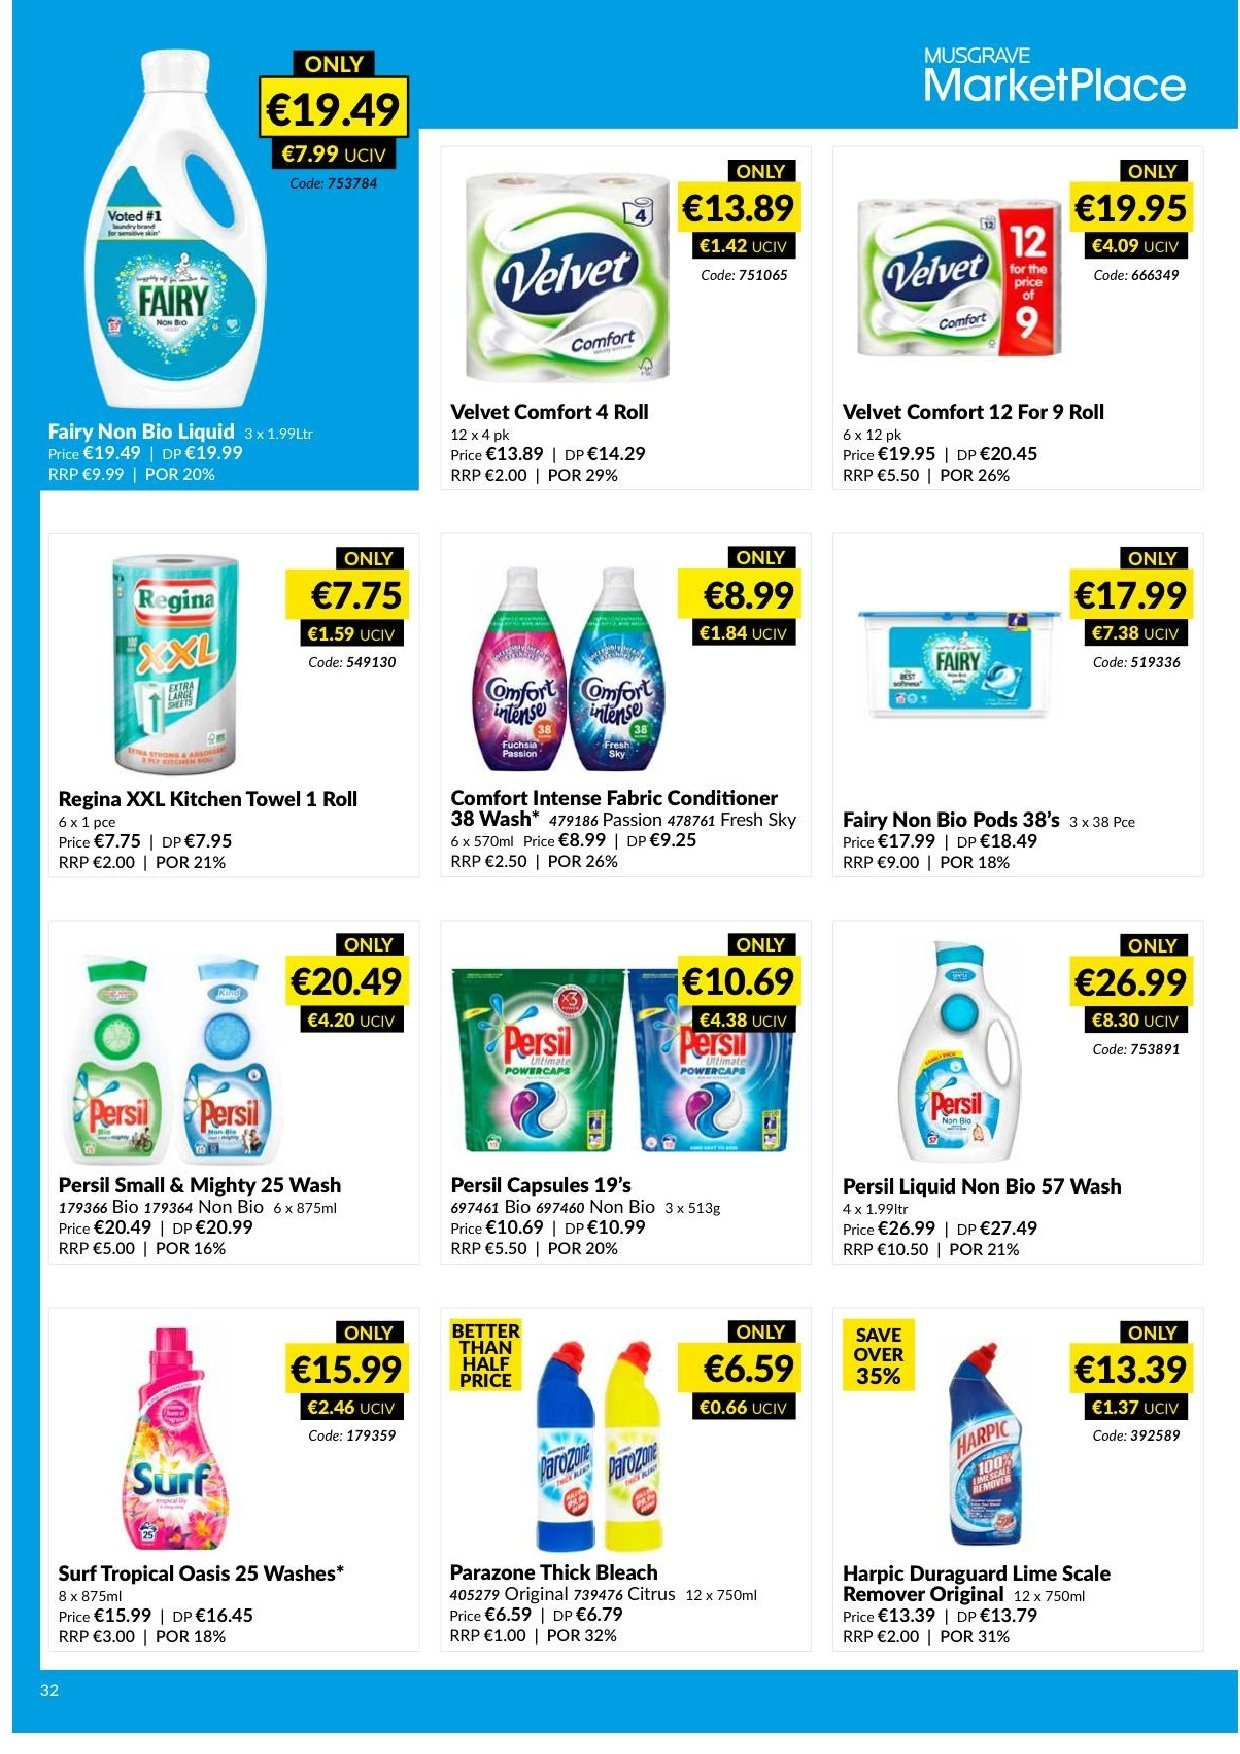 MUSGRAVE Market Place offer  - 17.3.2019 - 13.4.2019 - Sales products - thick bleach, remover, bleach, kitchen towel. Page 32.